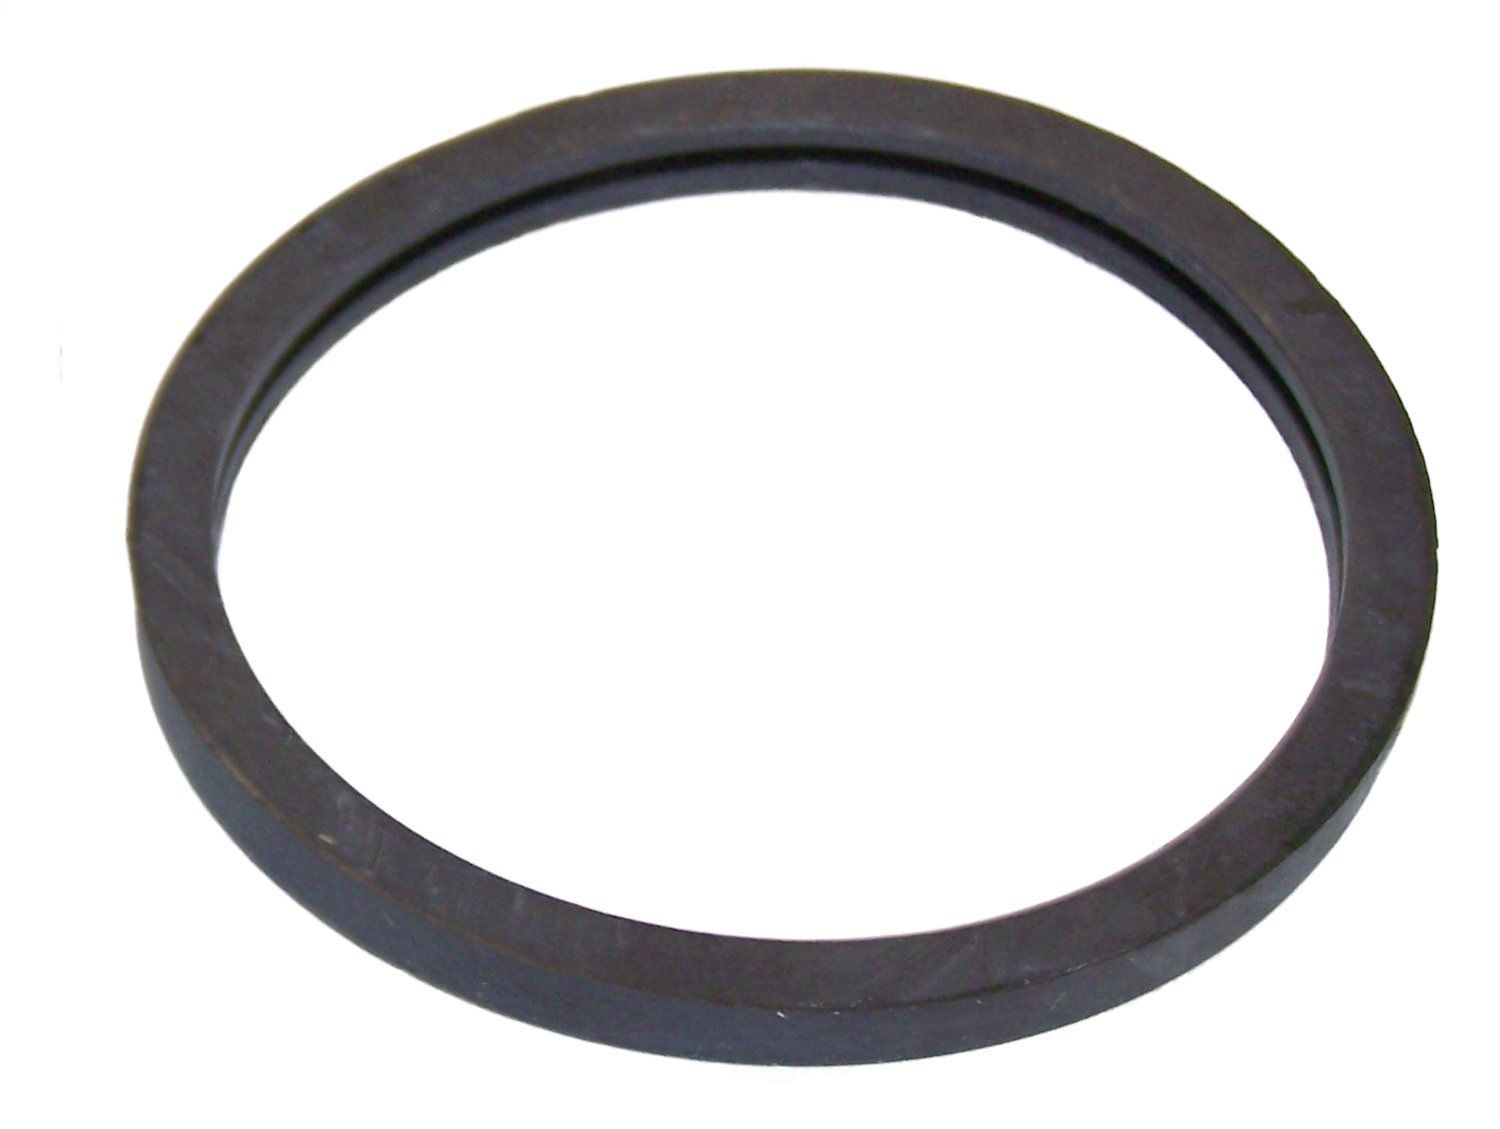 CROWN AUTOMOTIVE SALES CO. - Thermostat Housing Gasket - CAJ 4778971